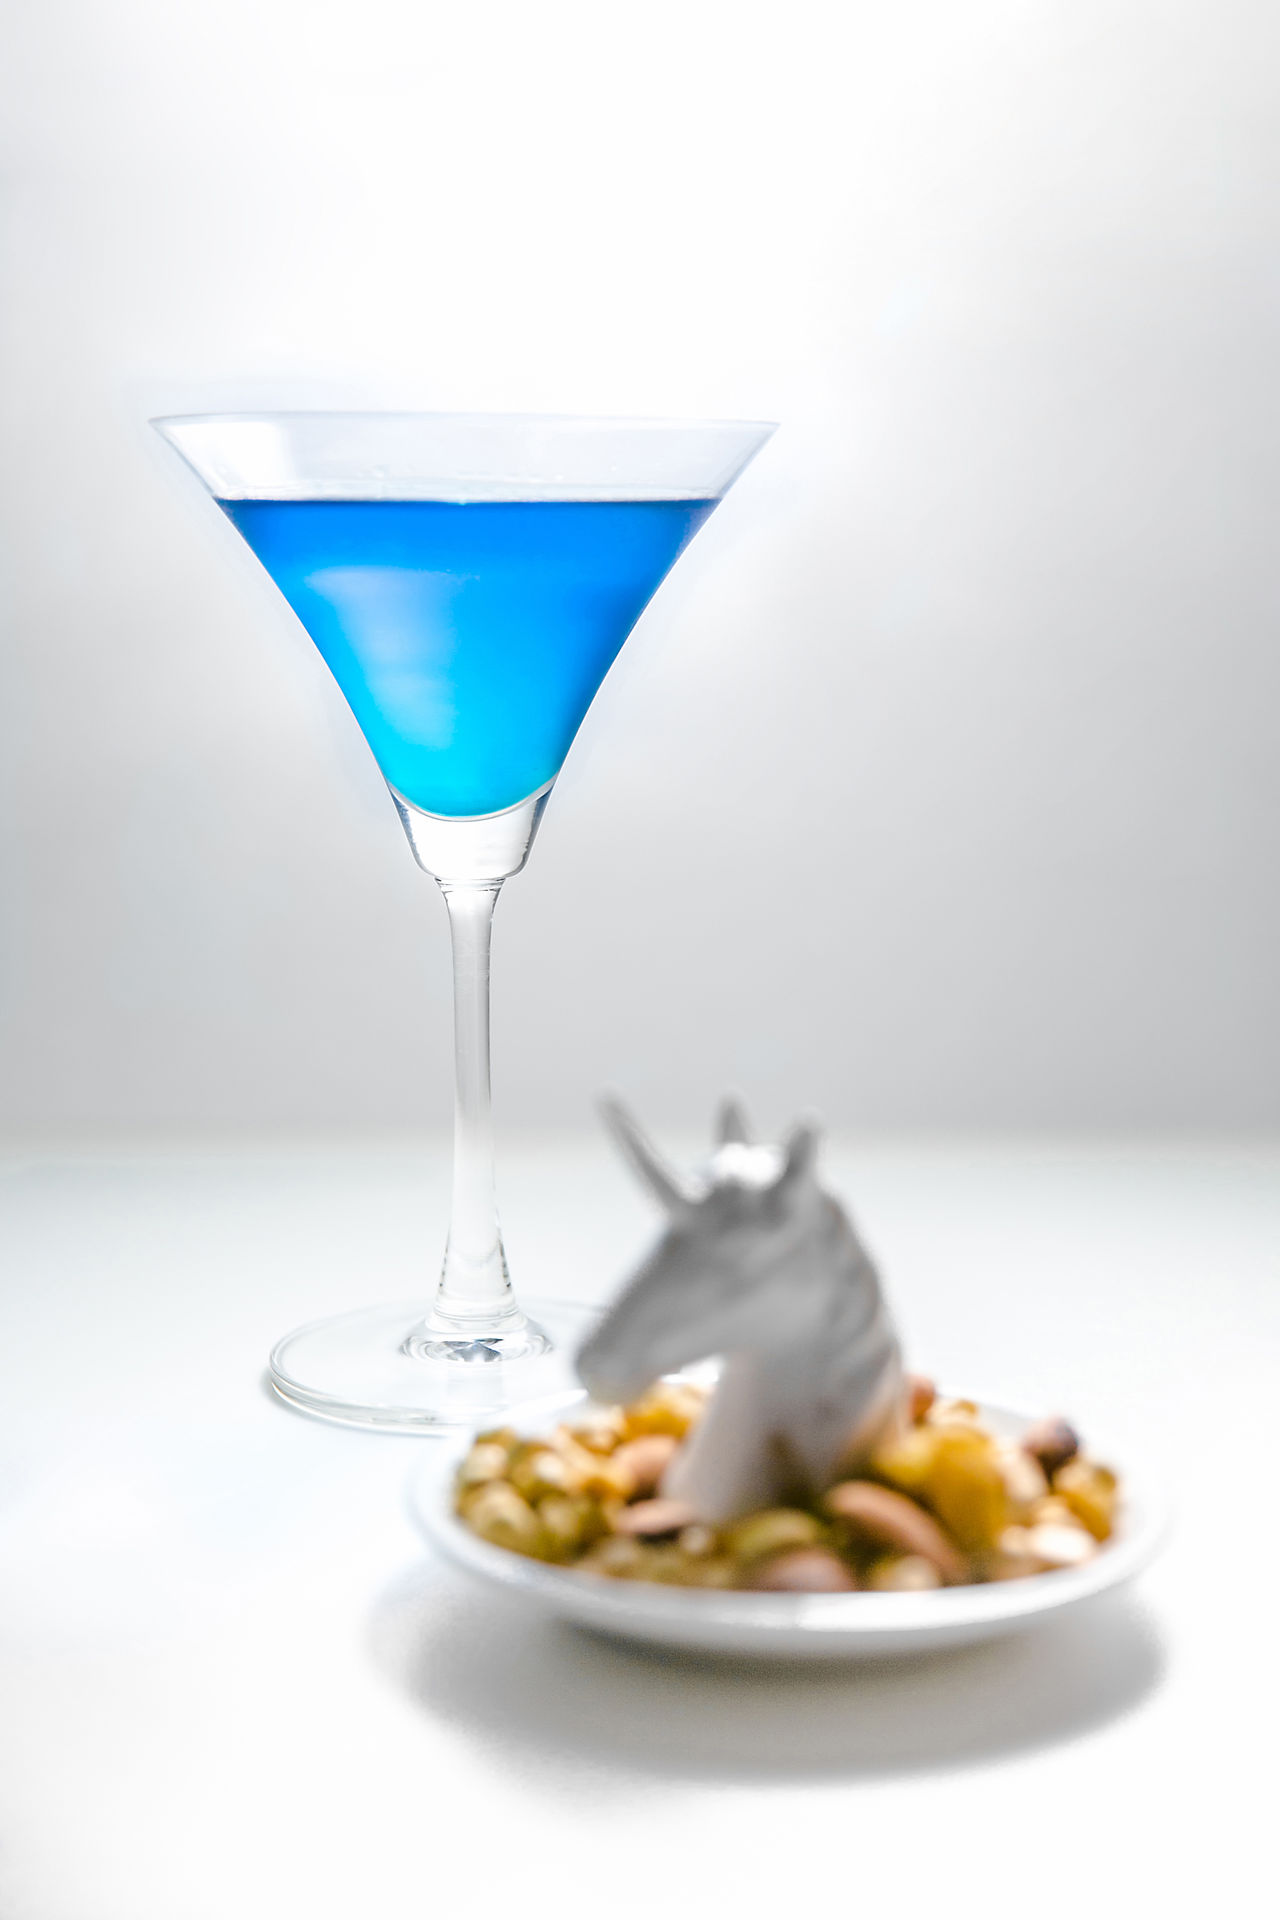 Alcohol Blue Close-up Cocktails Day Dinner Drinking Glass Food Food And Drink Martini Martini Glass No People Nuts Plate Unicorn White Background